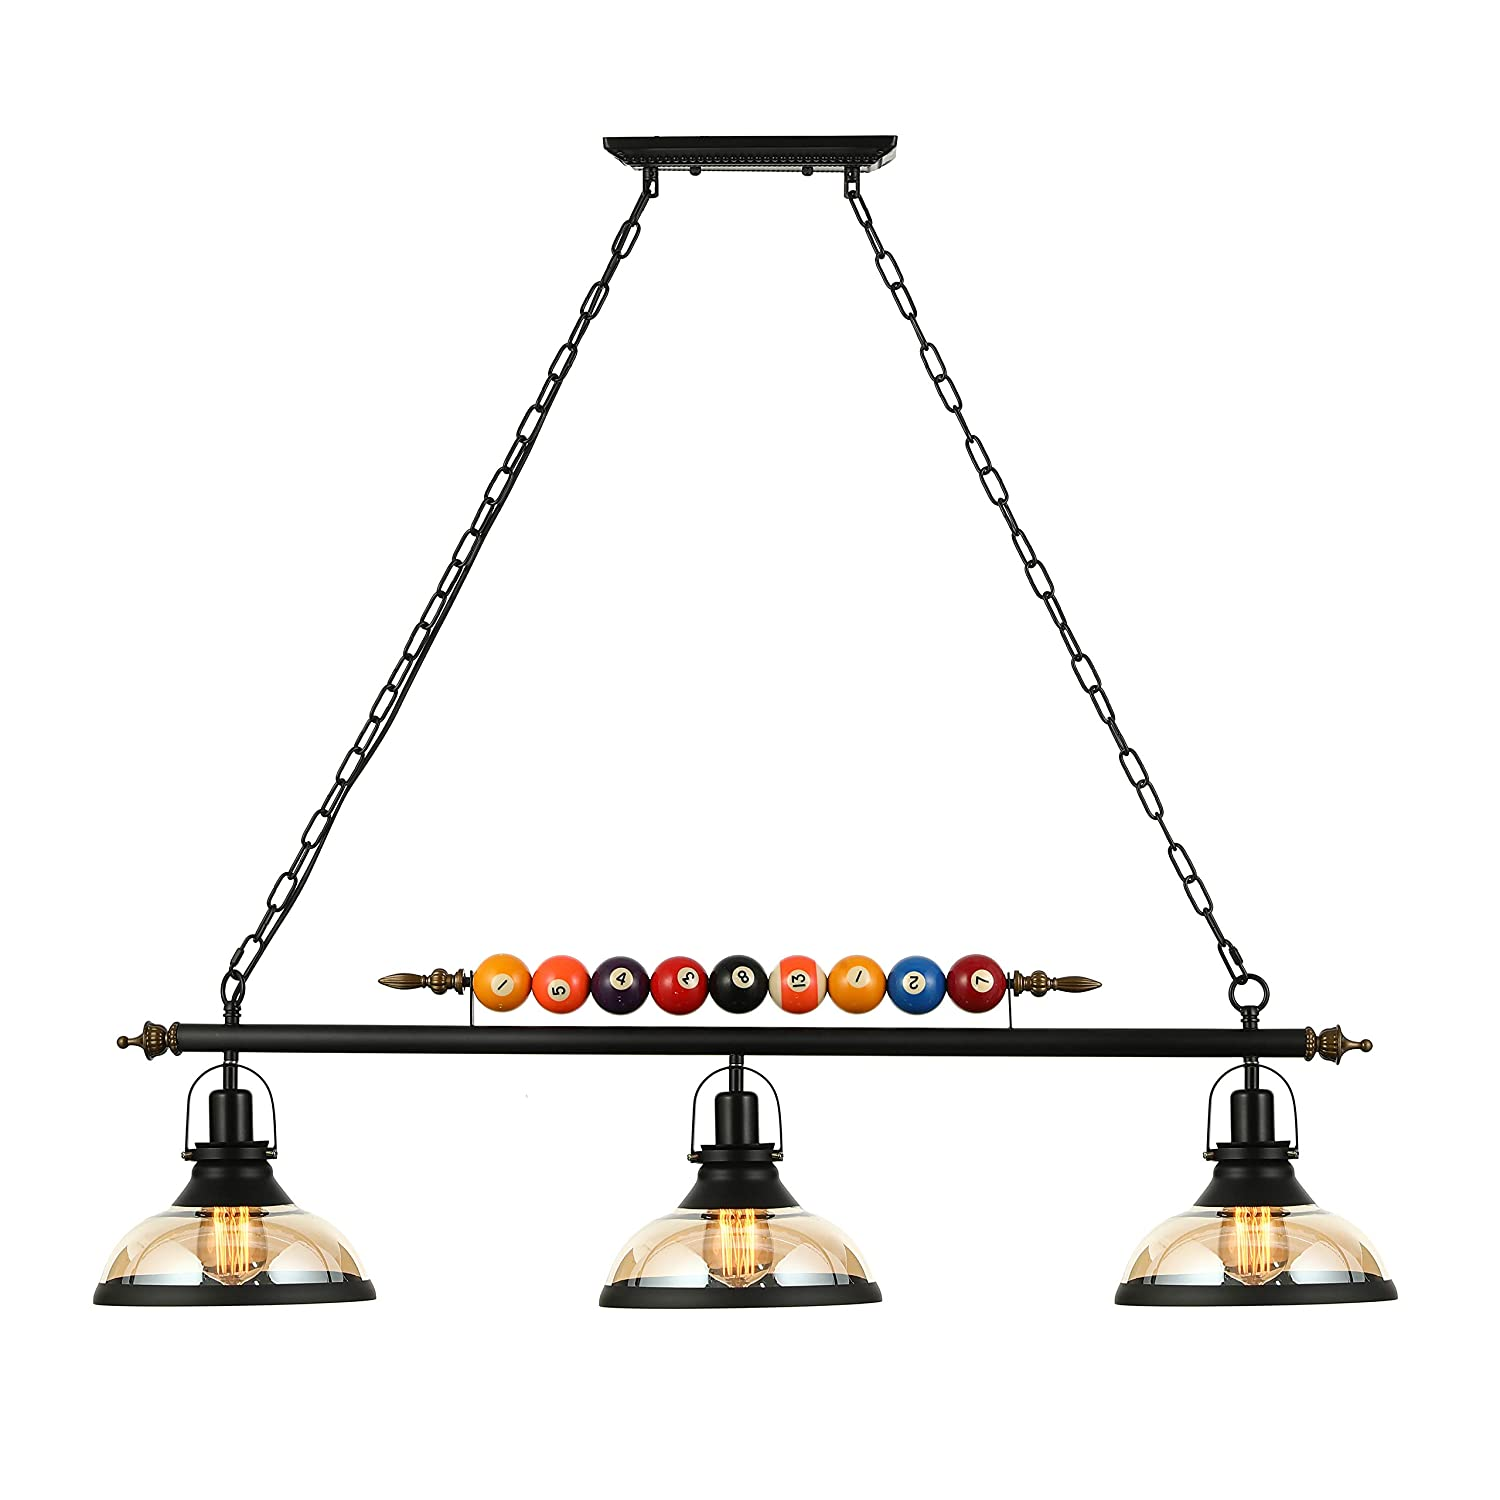 Ladiqi 3 lights island light hanging pool table light fixture pendant light with clear glass shade special billiard ball decoration chandelier for